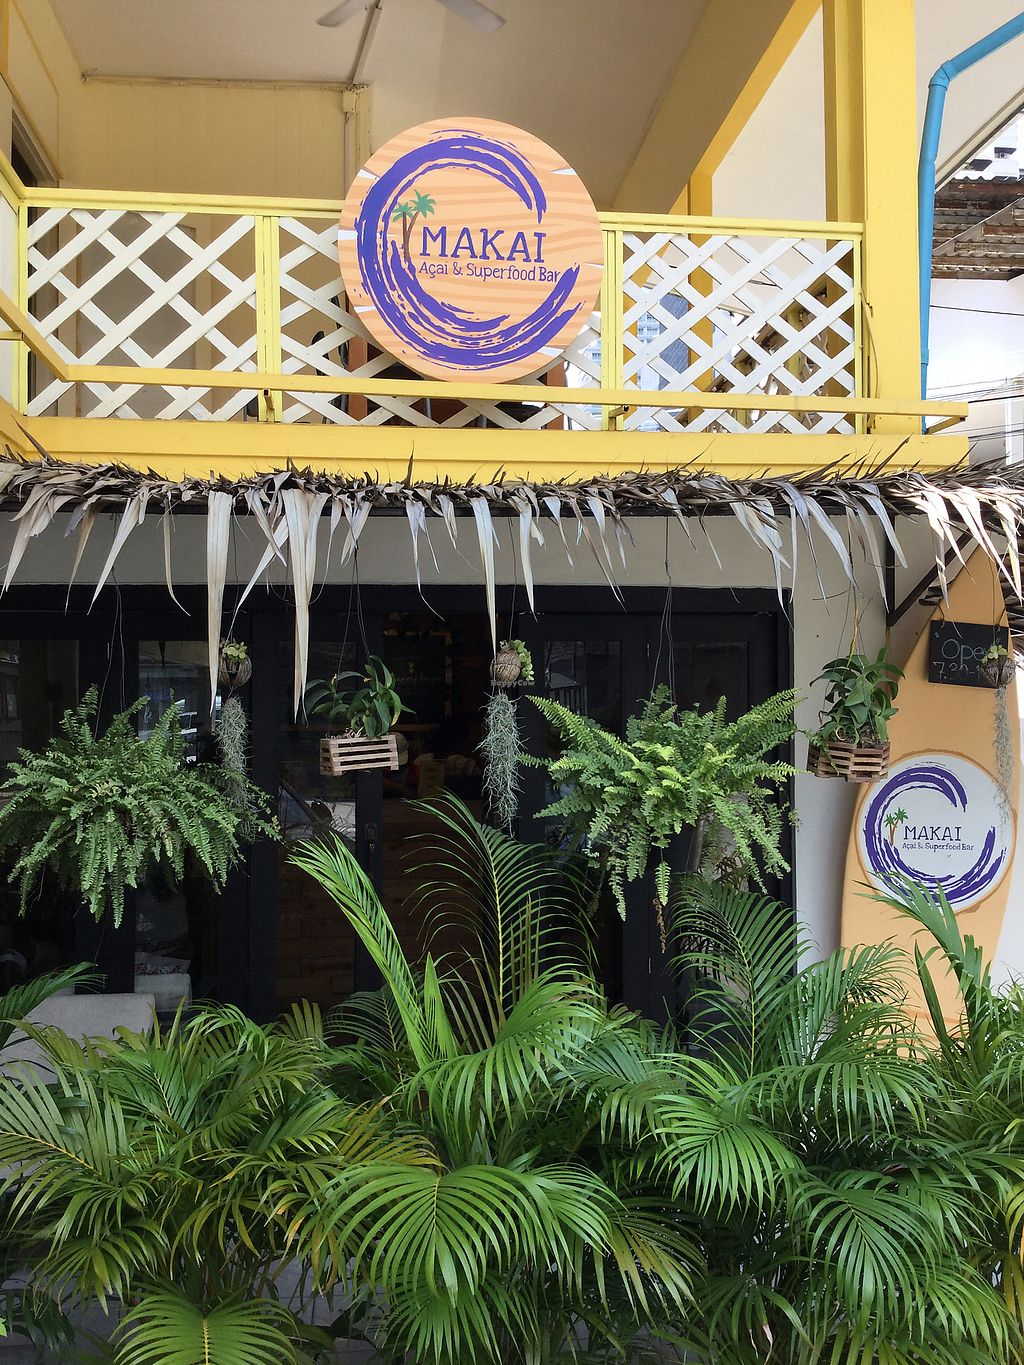 """Photo of MAKAI Açaí & Superfood Bar  by <a href=""""/members/profile/Mike%20Munsie"""">Mike Munsie</a> <br/>shop front <br/> March 2, 2018  - <a href='/contact/abuse/image/108532/365640'>Report</a>"""